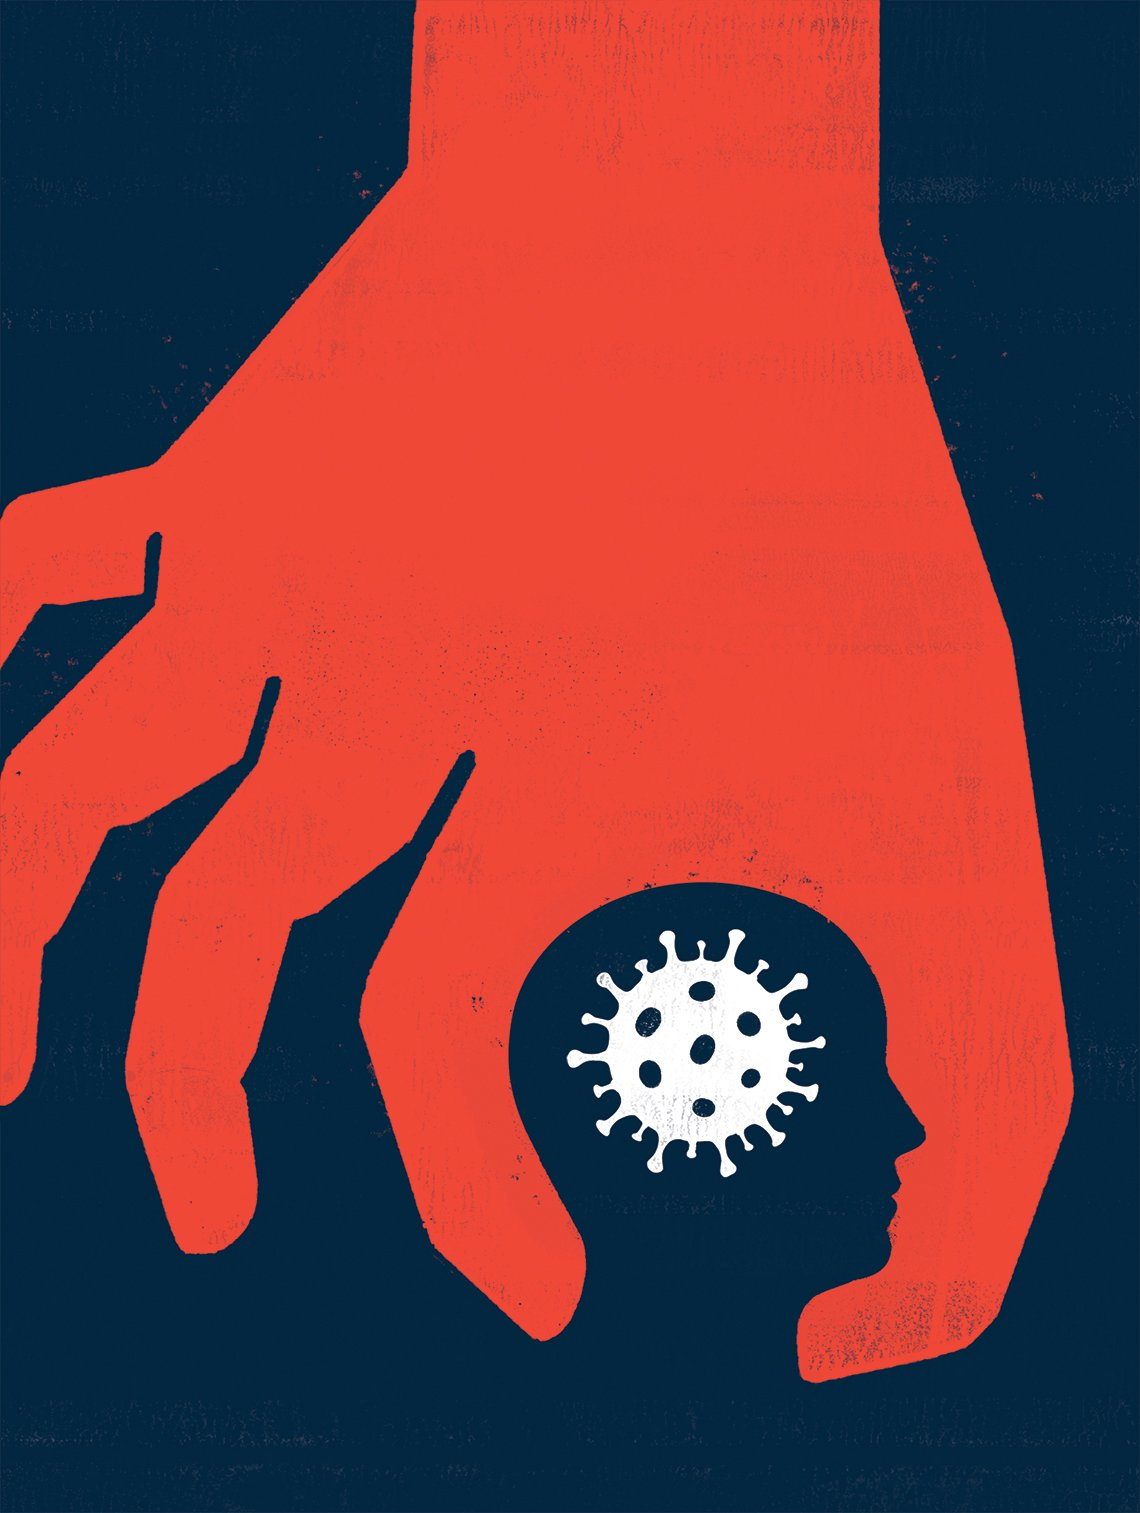 dramatic illustration of a large red hand with first finger and thumb encircling a head with the coronavirus cell where the brain is